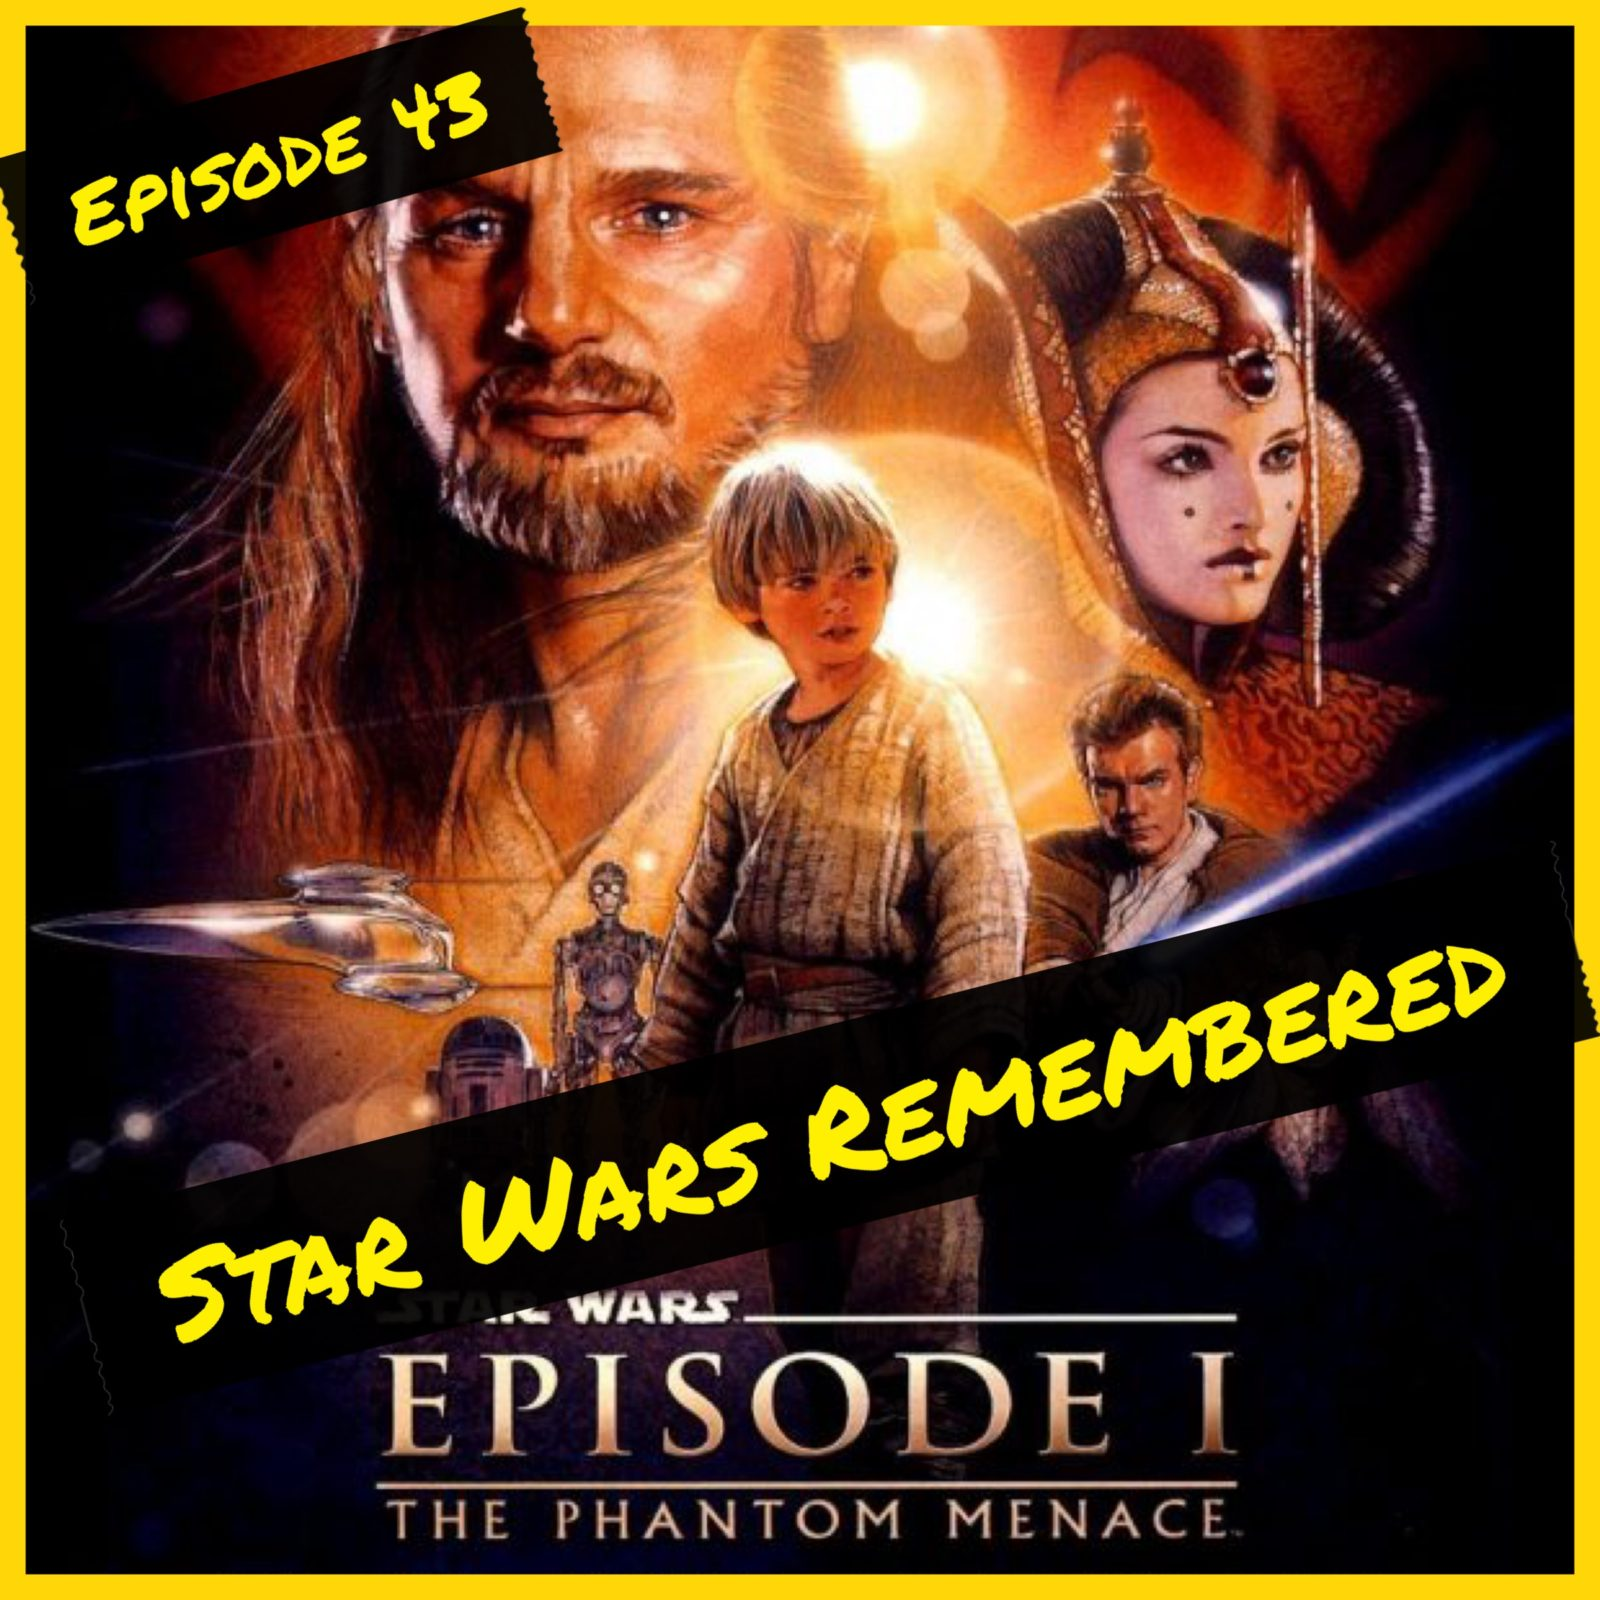 Star Wars Remembered - The Phantom Menace